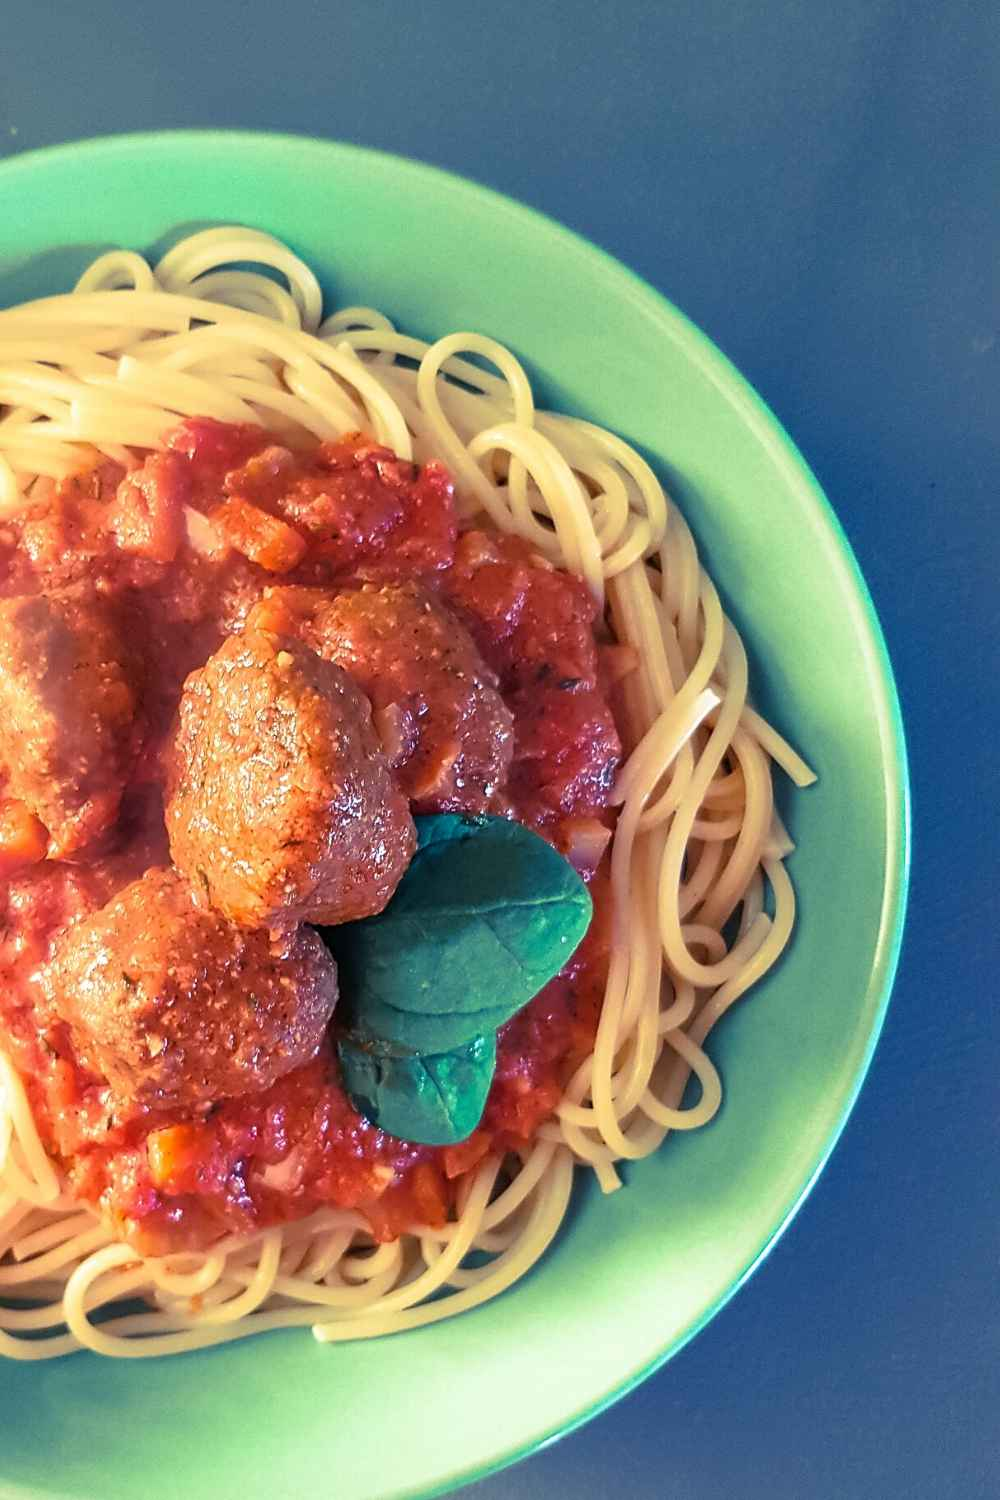 a bowl of spaghetti and meatballs recipe